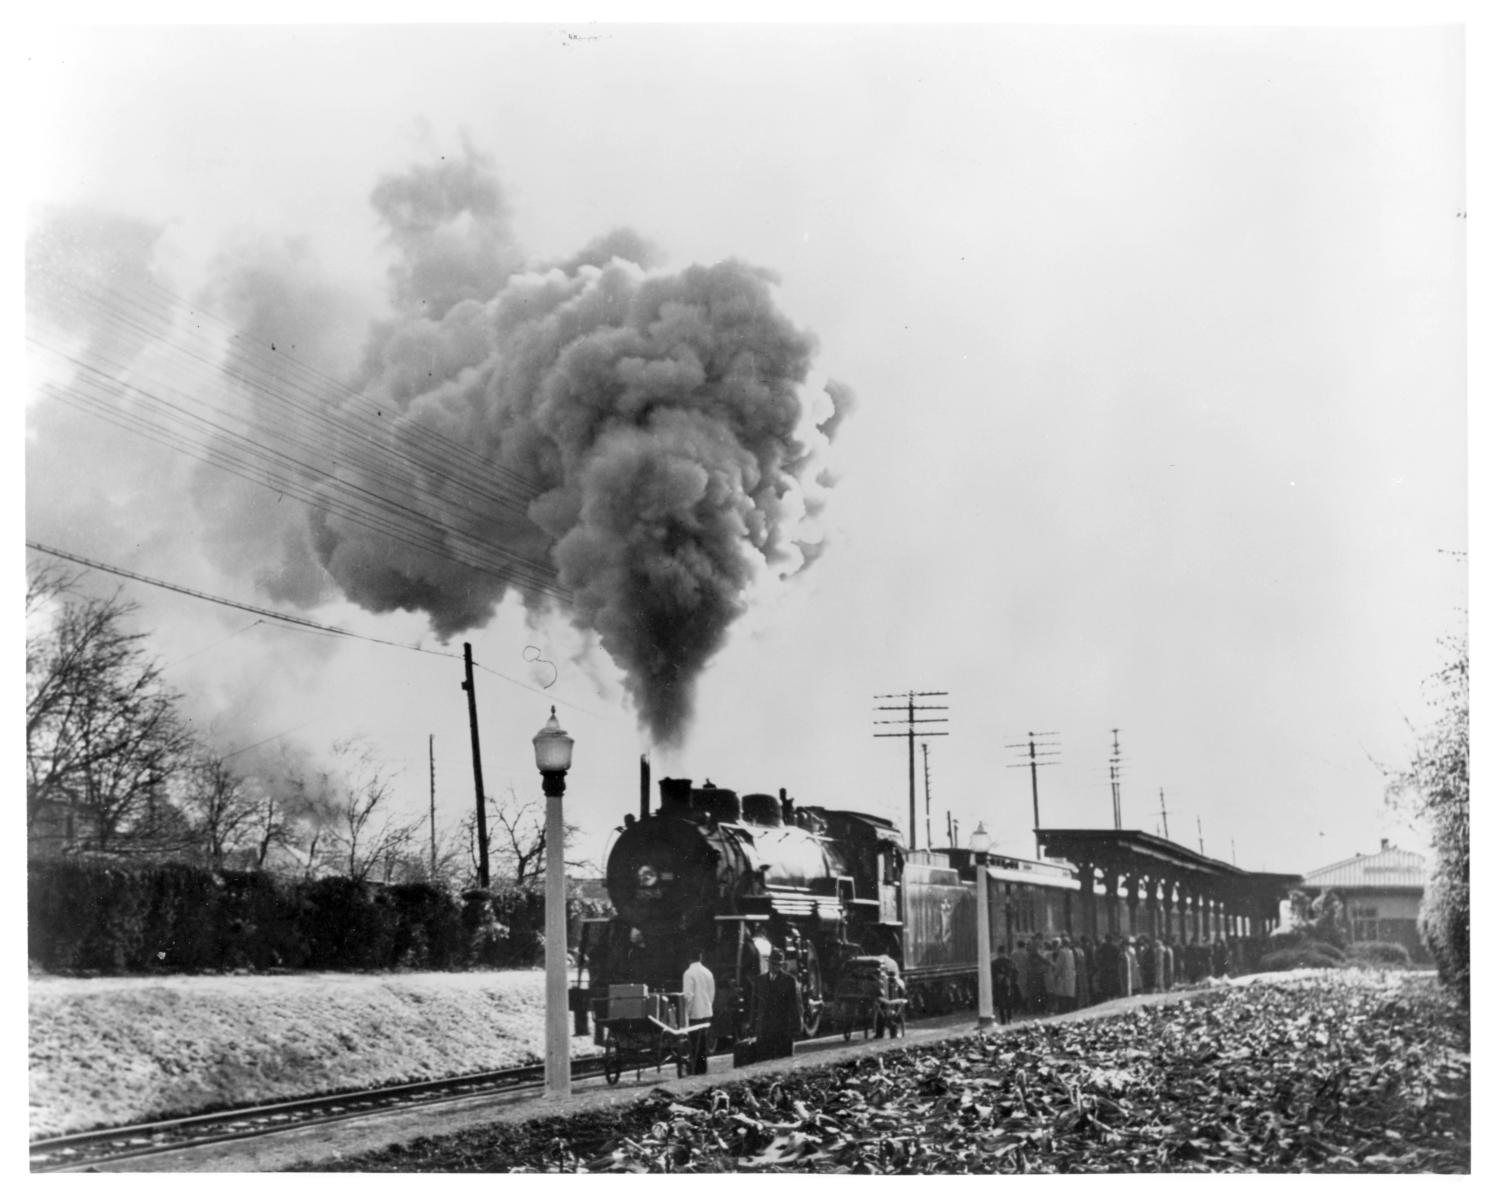 "[""Texas Special"" arriving at Highland Park Station], Missouri - Kansas - Texas (KATY) Railroads ""Texas Special"" train No. 2, northbound, headed by Engine No. 388, a Pacific type 4-6-2 locomotive, arriving at Highland Park station, enroute from the Dallas Union Station to St. Louis.,"